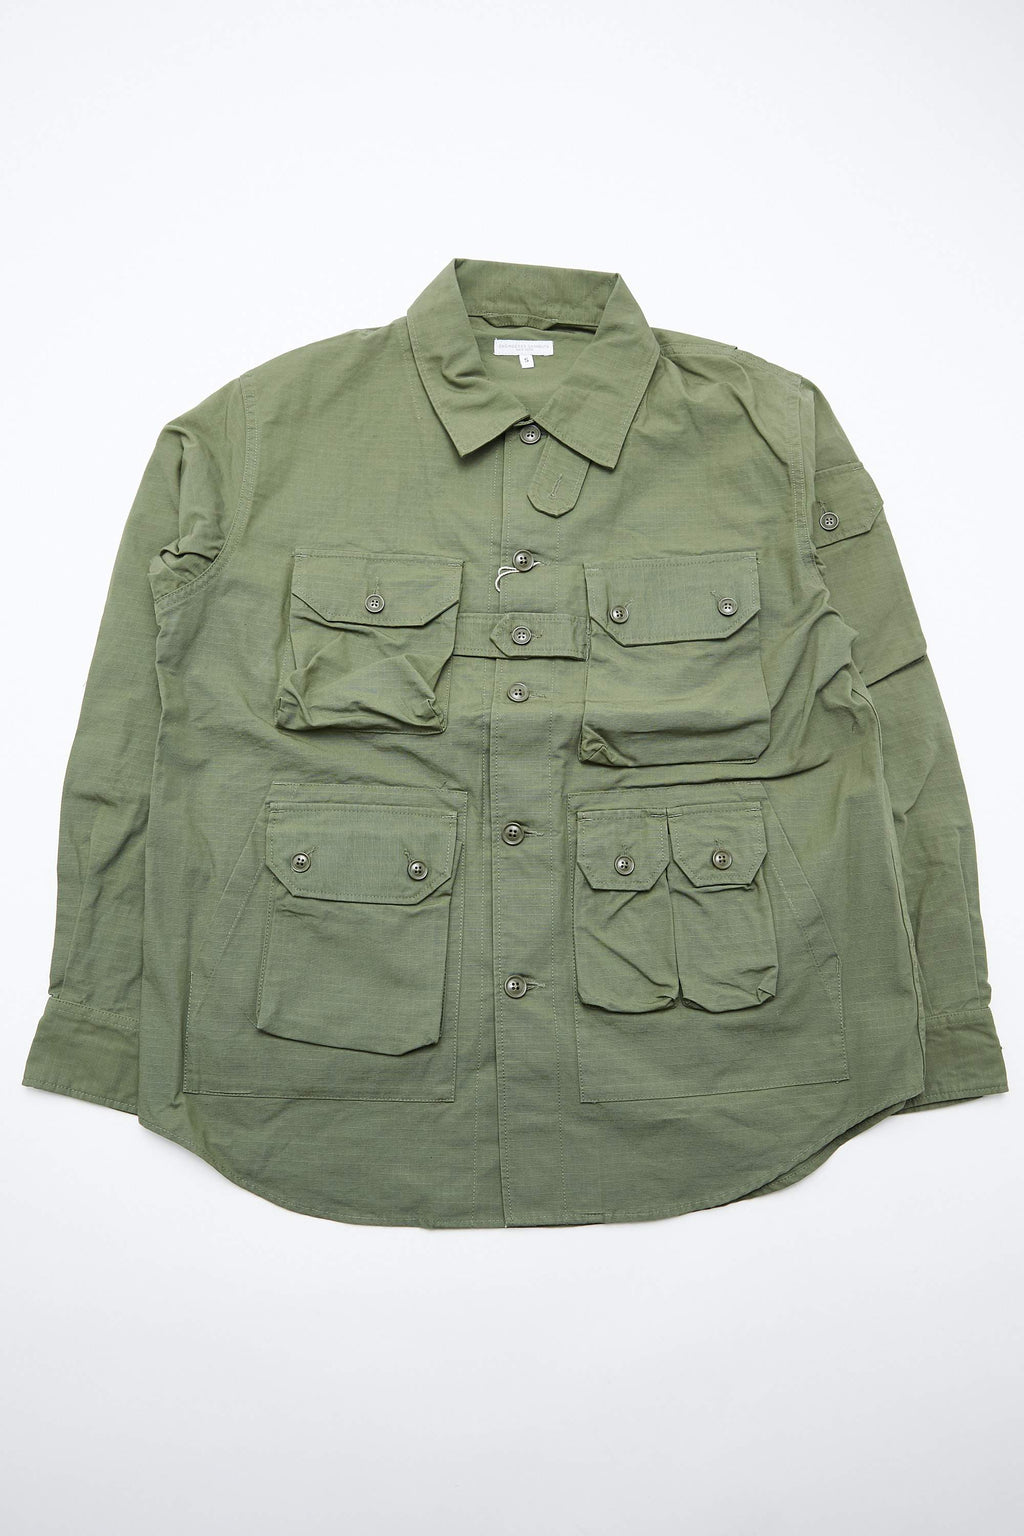 Engineered Garments Explorer Shirt Jacket - Olive Cotton Ripstop